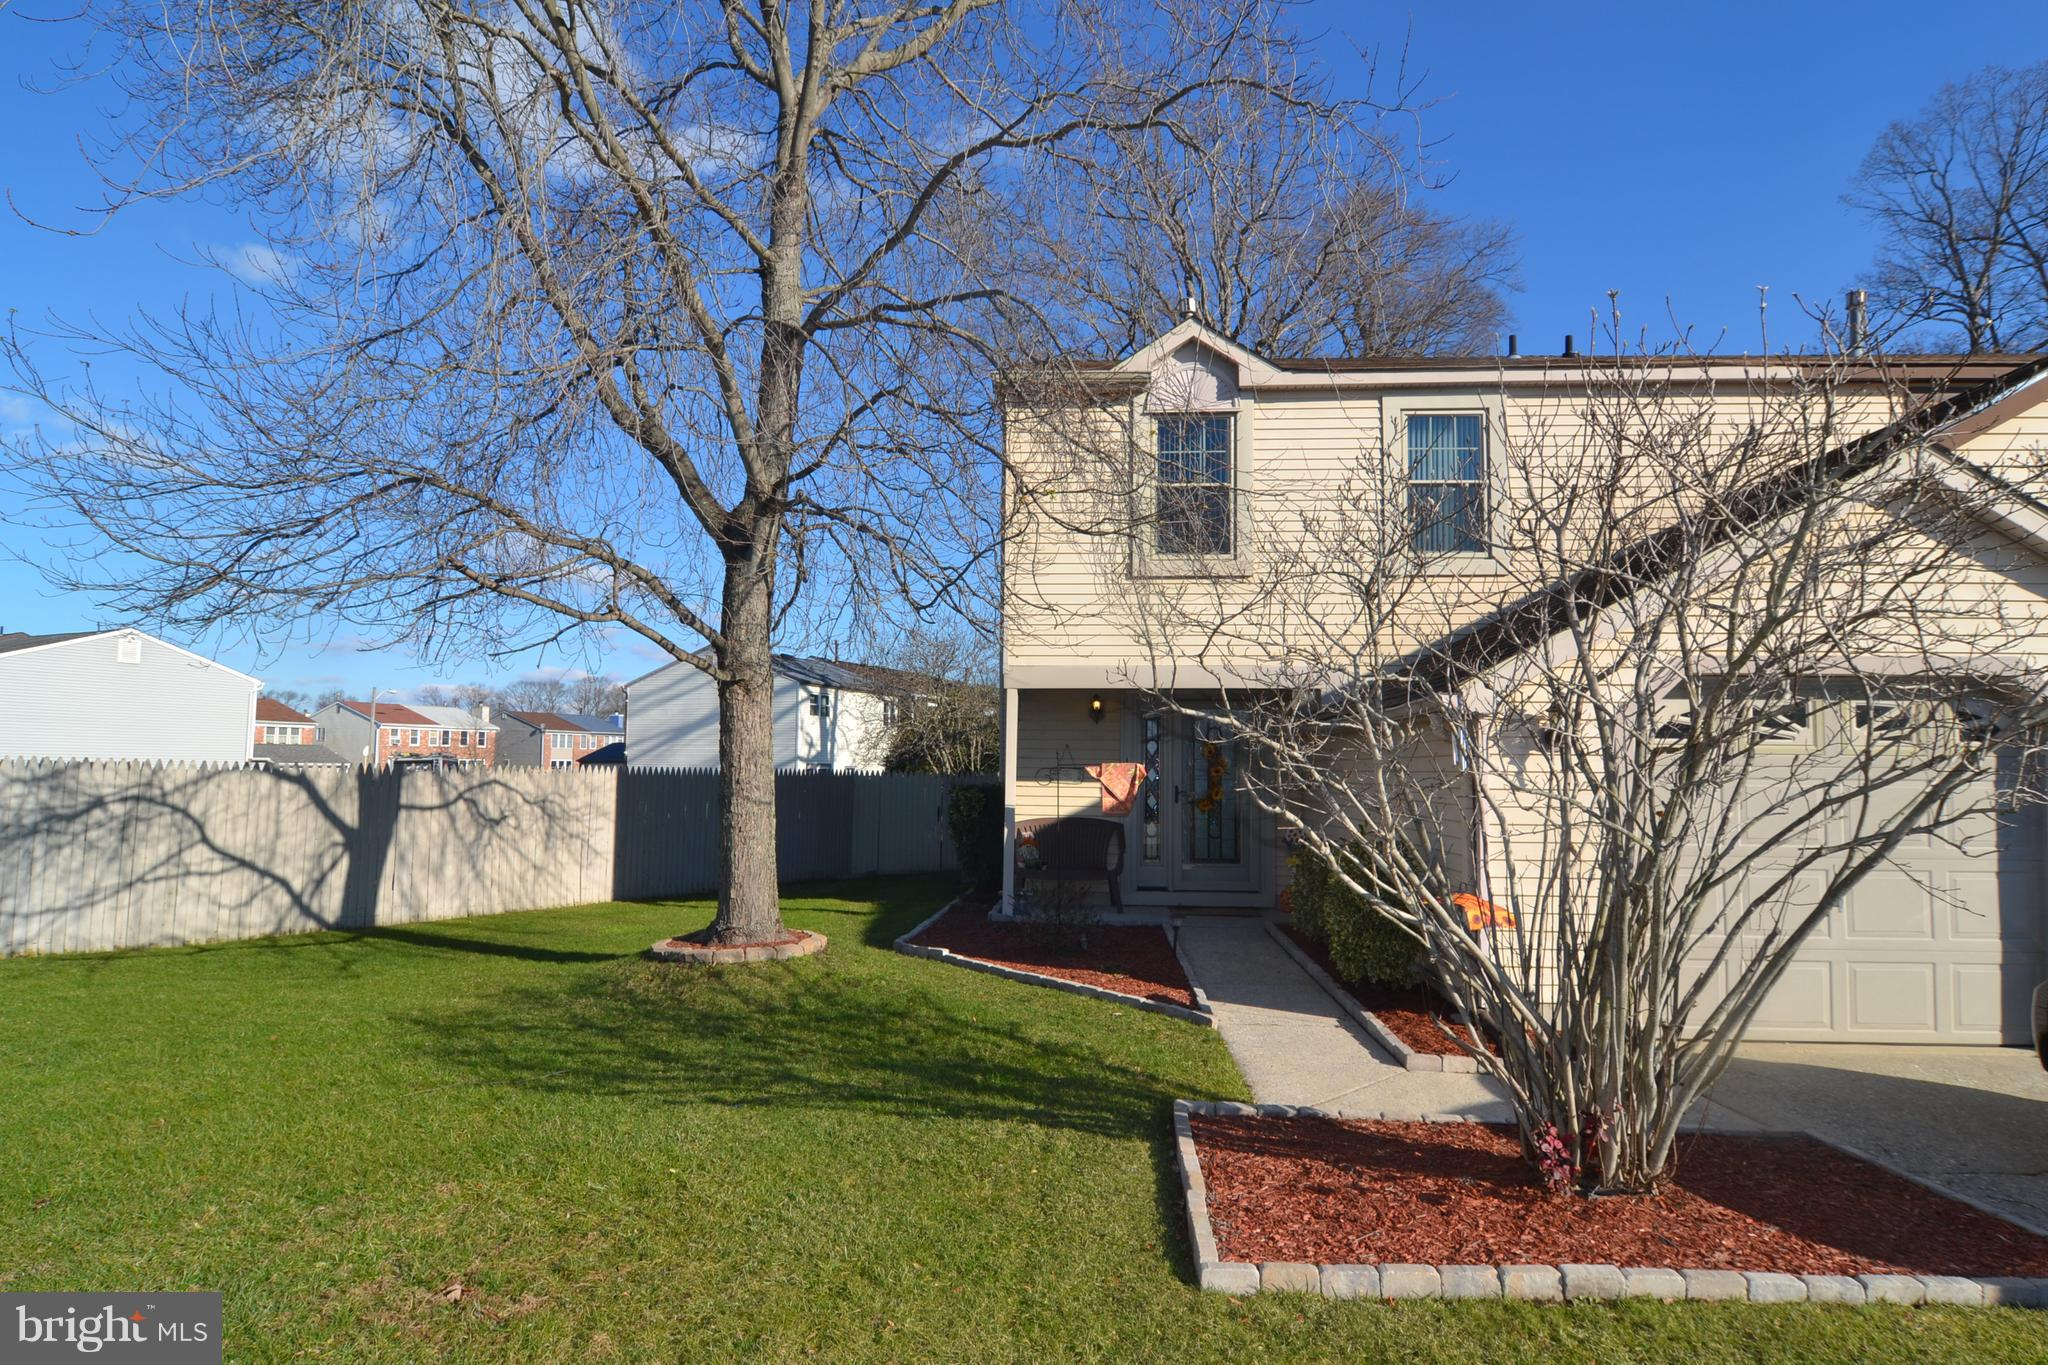 9 QUASAR COURT, SEWELL, NJ 08080